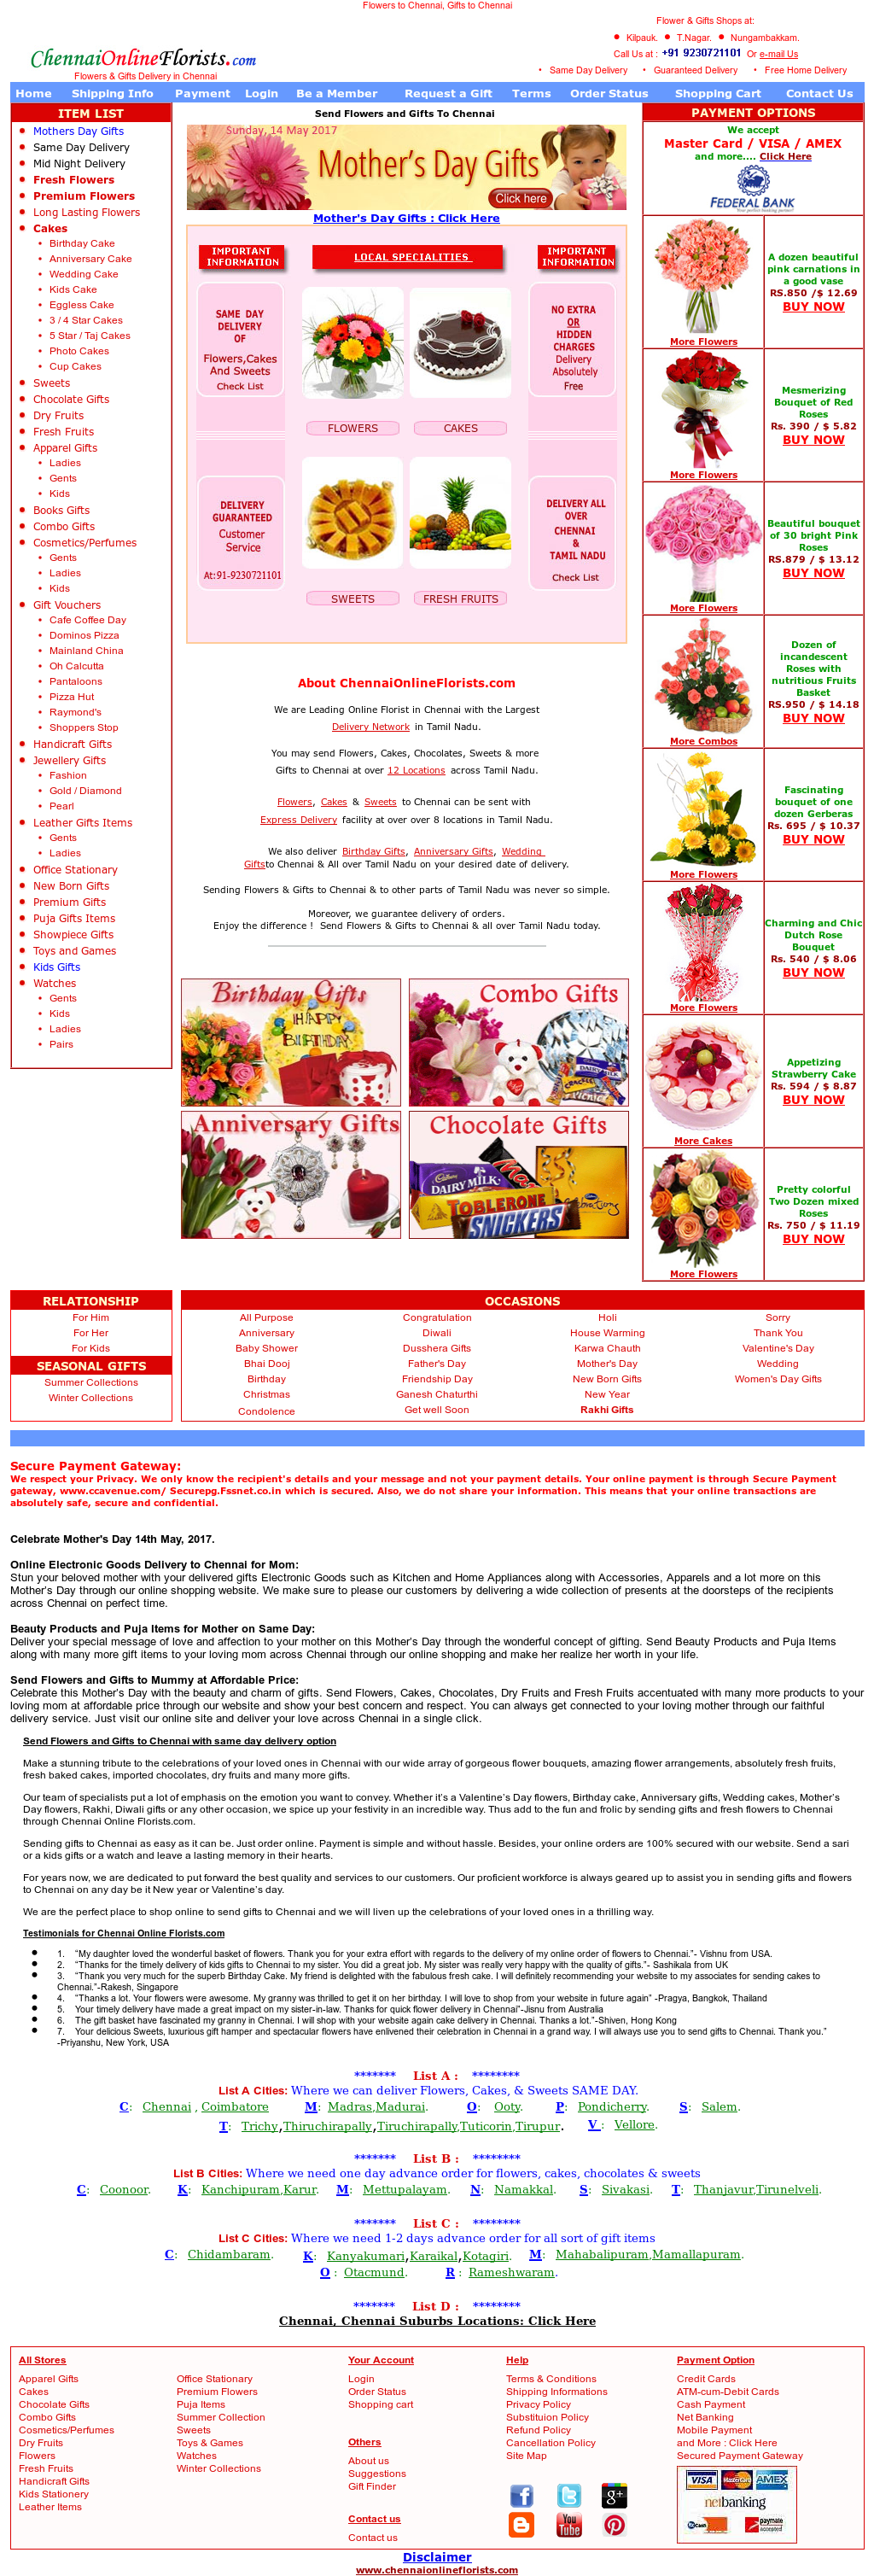 Chennaionlineflorists Competitors, Revenue and Employees - Owler